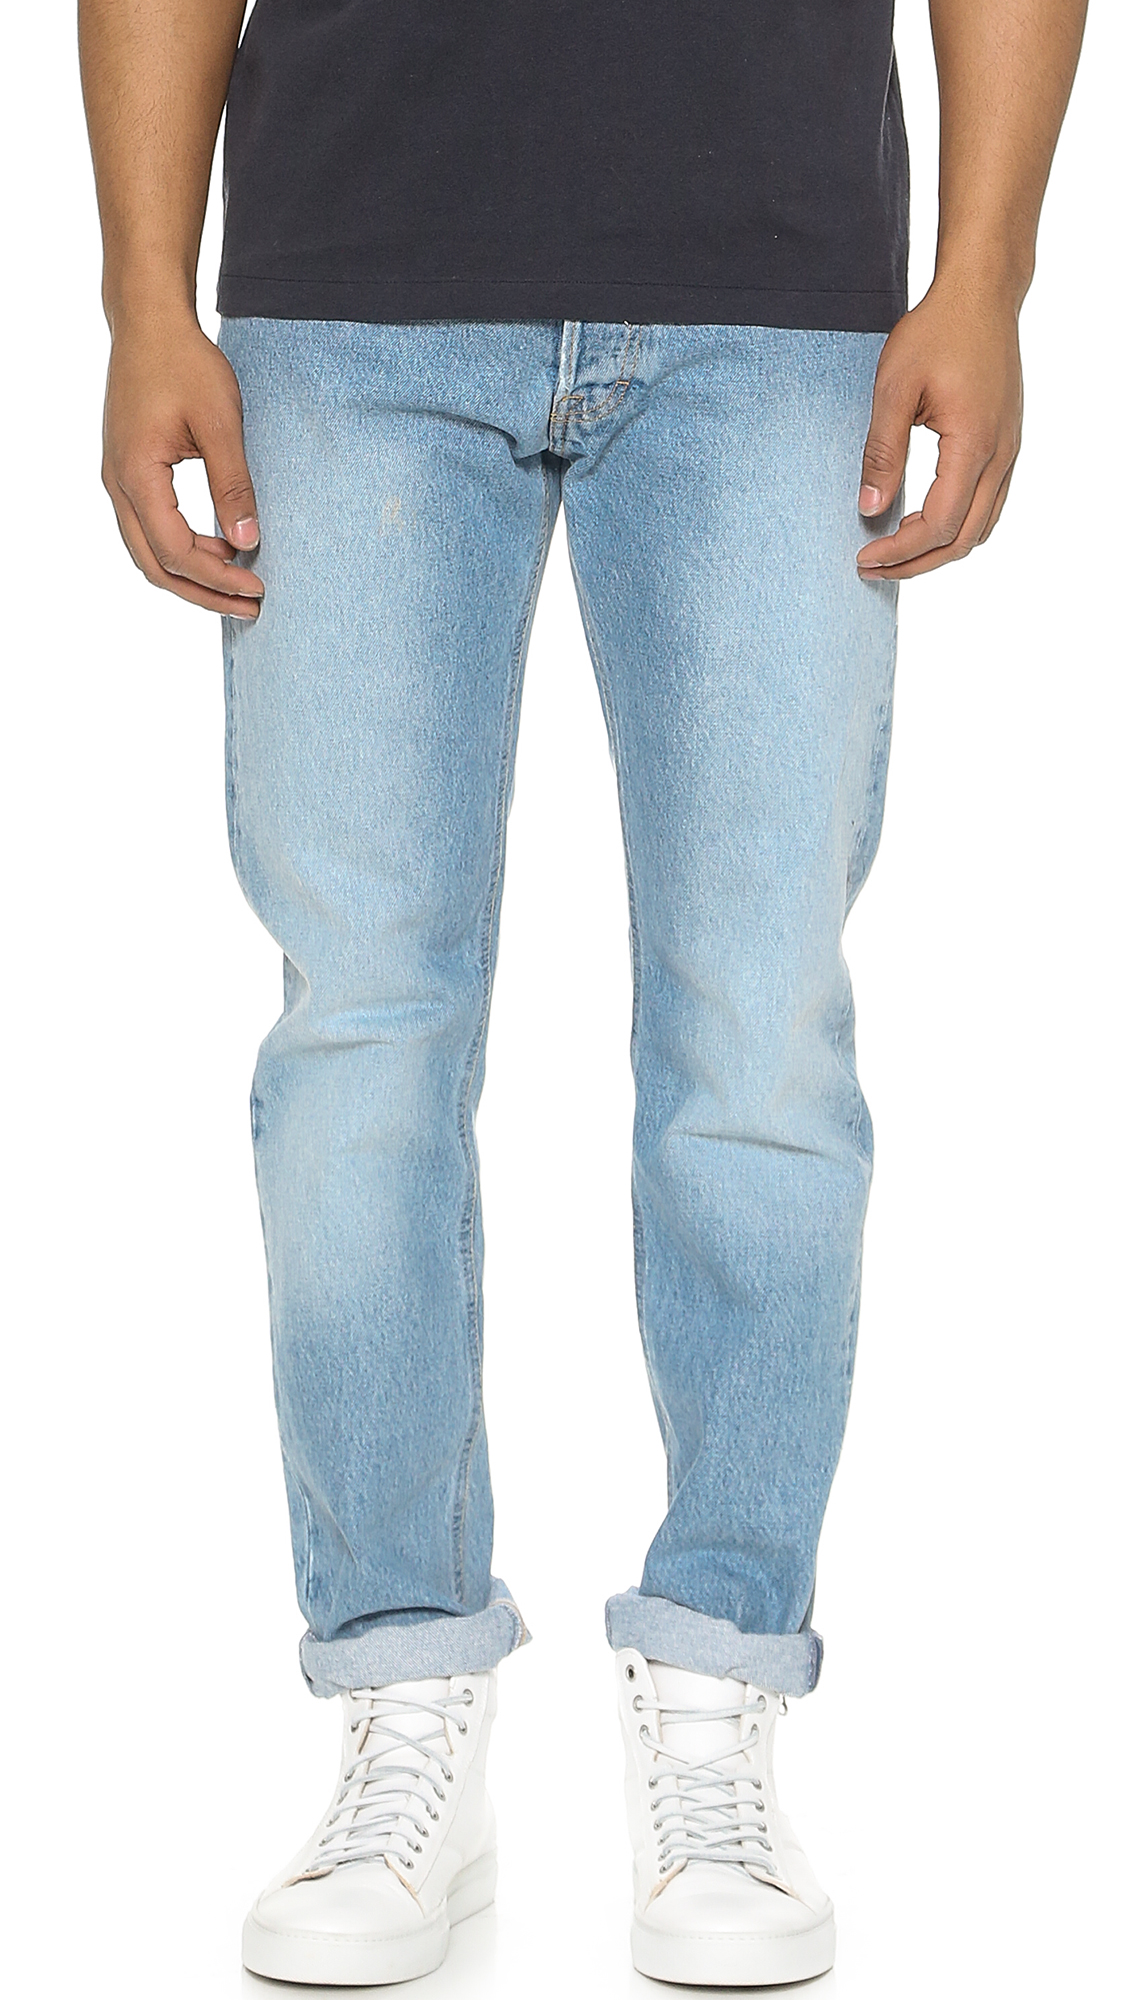 0b2228c486a2 Our Legacy Vintage Wash First Cut Jeans   EAST DANE